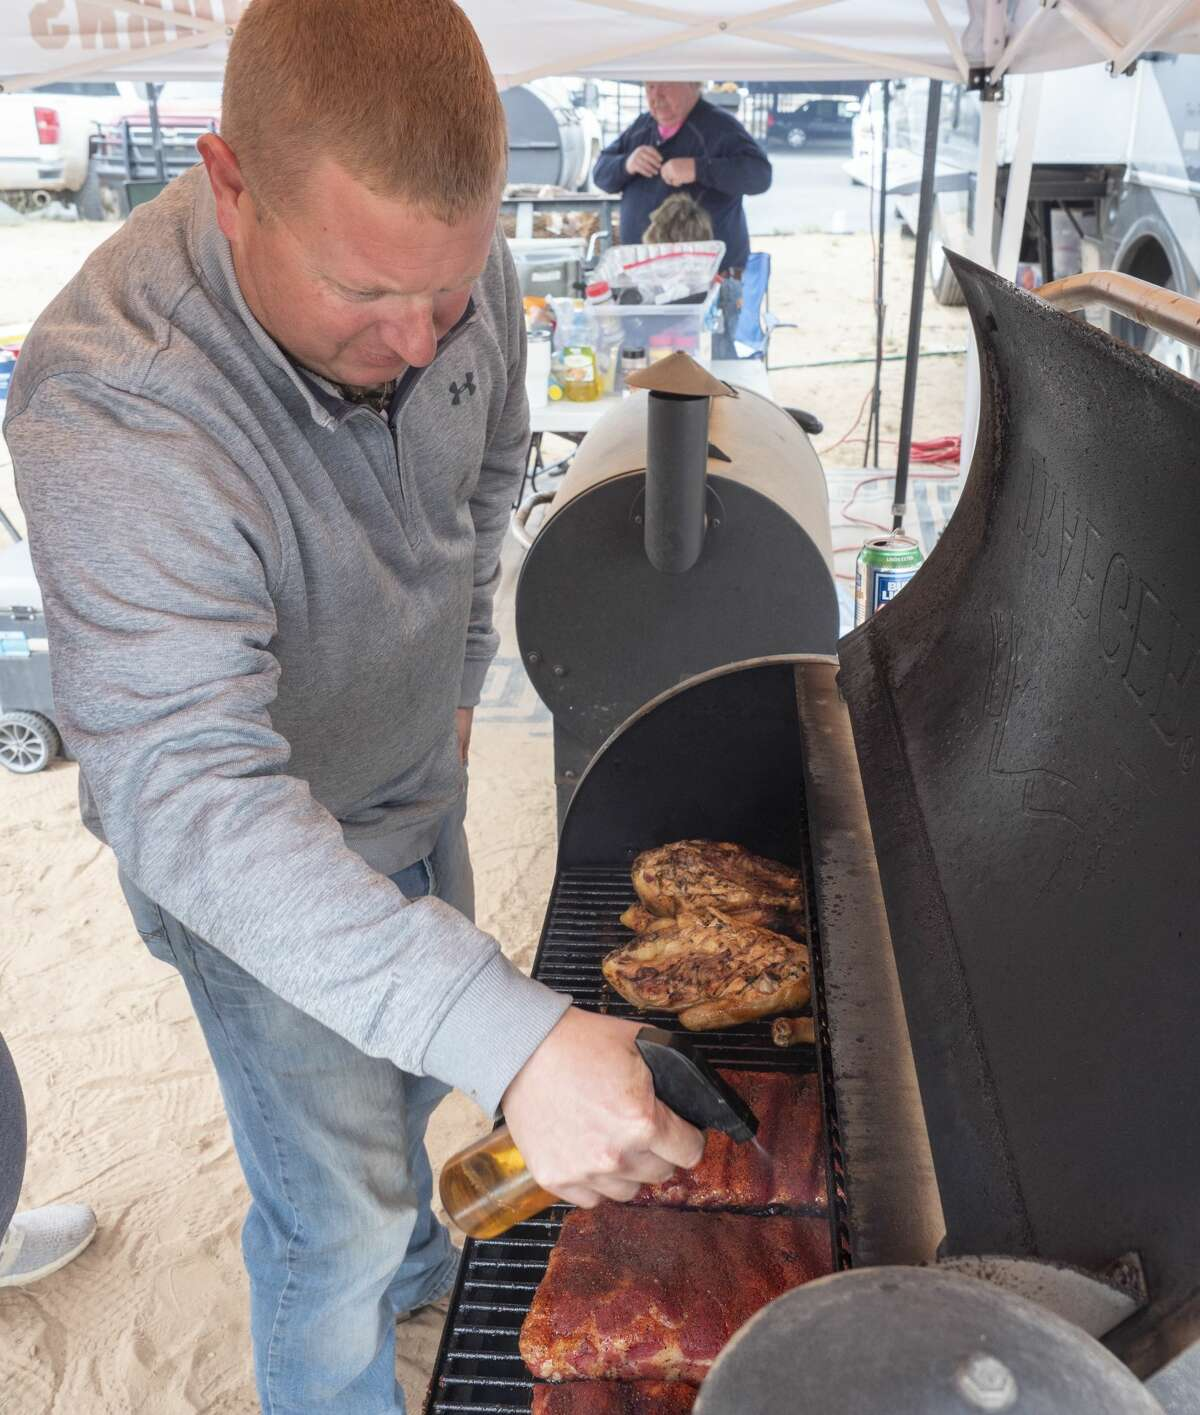 Brian Stephens with team Lazy Boy Cooking, sprays the ribs with a mixture 10/12/19 as he and other teams cook brisket, chicken, chilli and other smoked treats outside the American Legion Post off Veterans Park Lane during the annual Patsy's Cook-off Breast Cancer Awareness competition. Tim Fischer/Reporter-Telegram